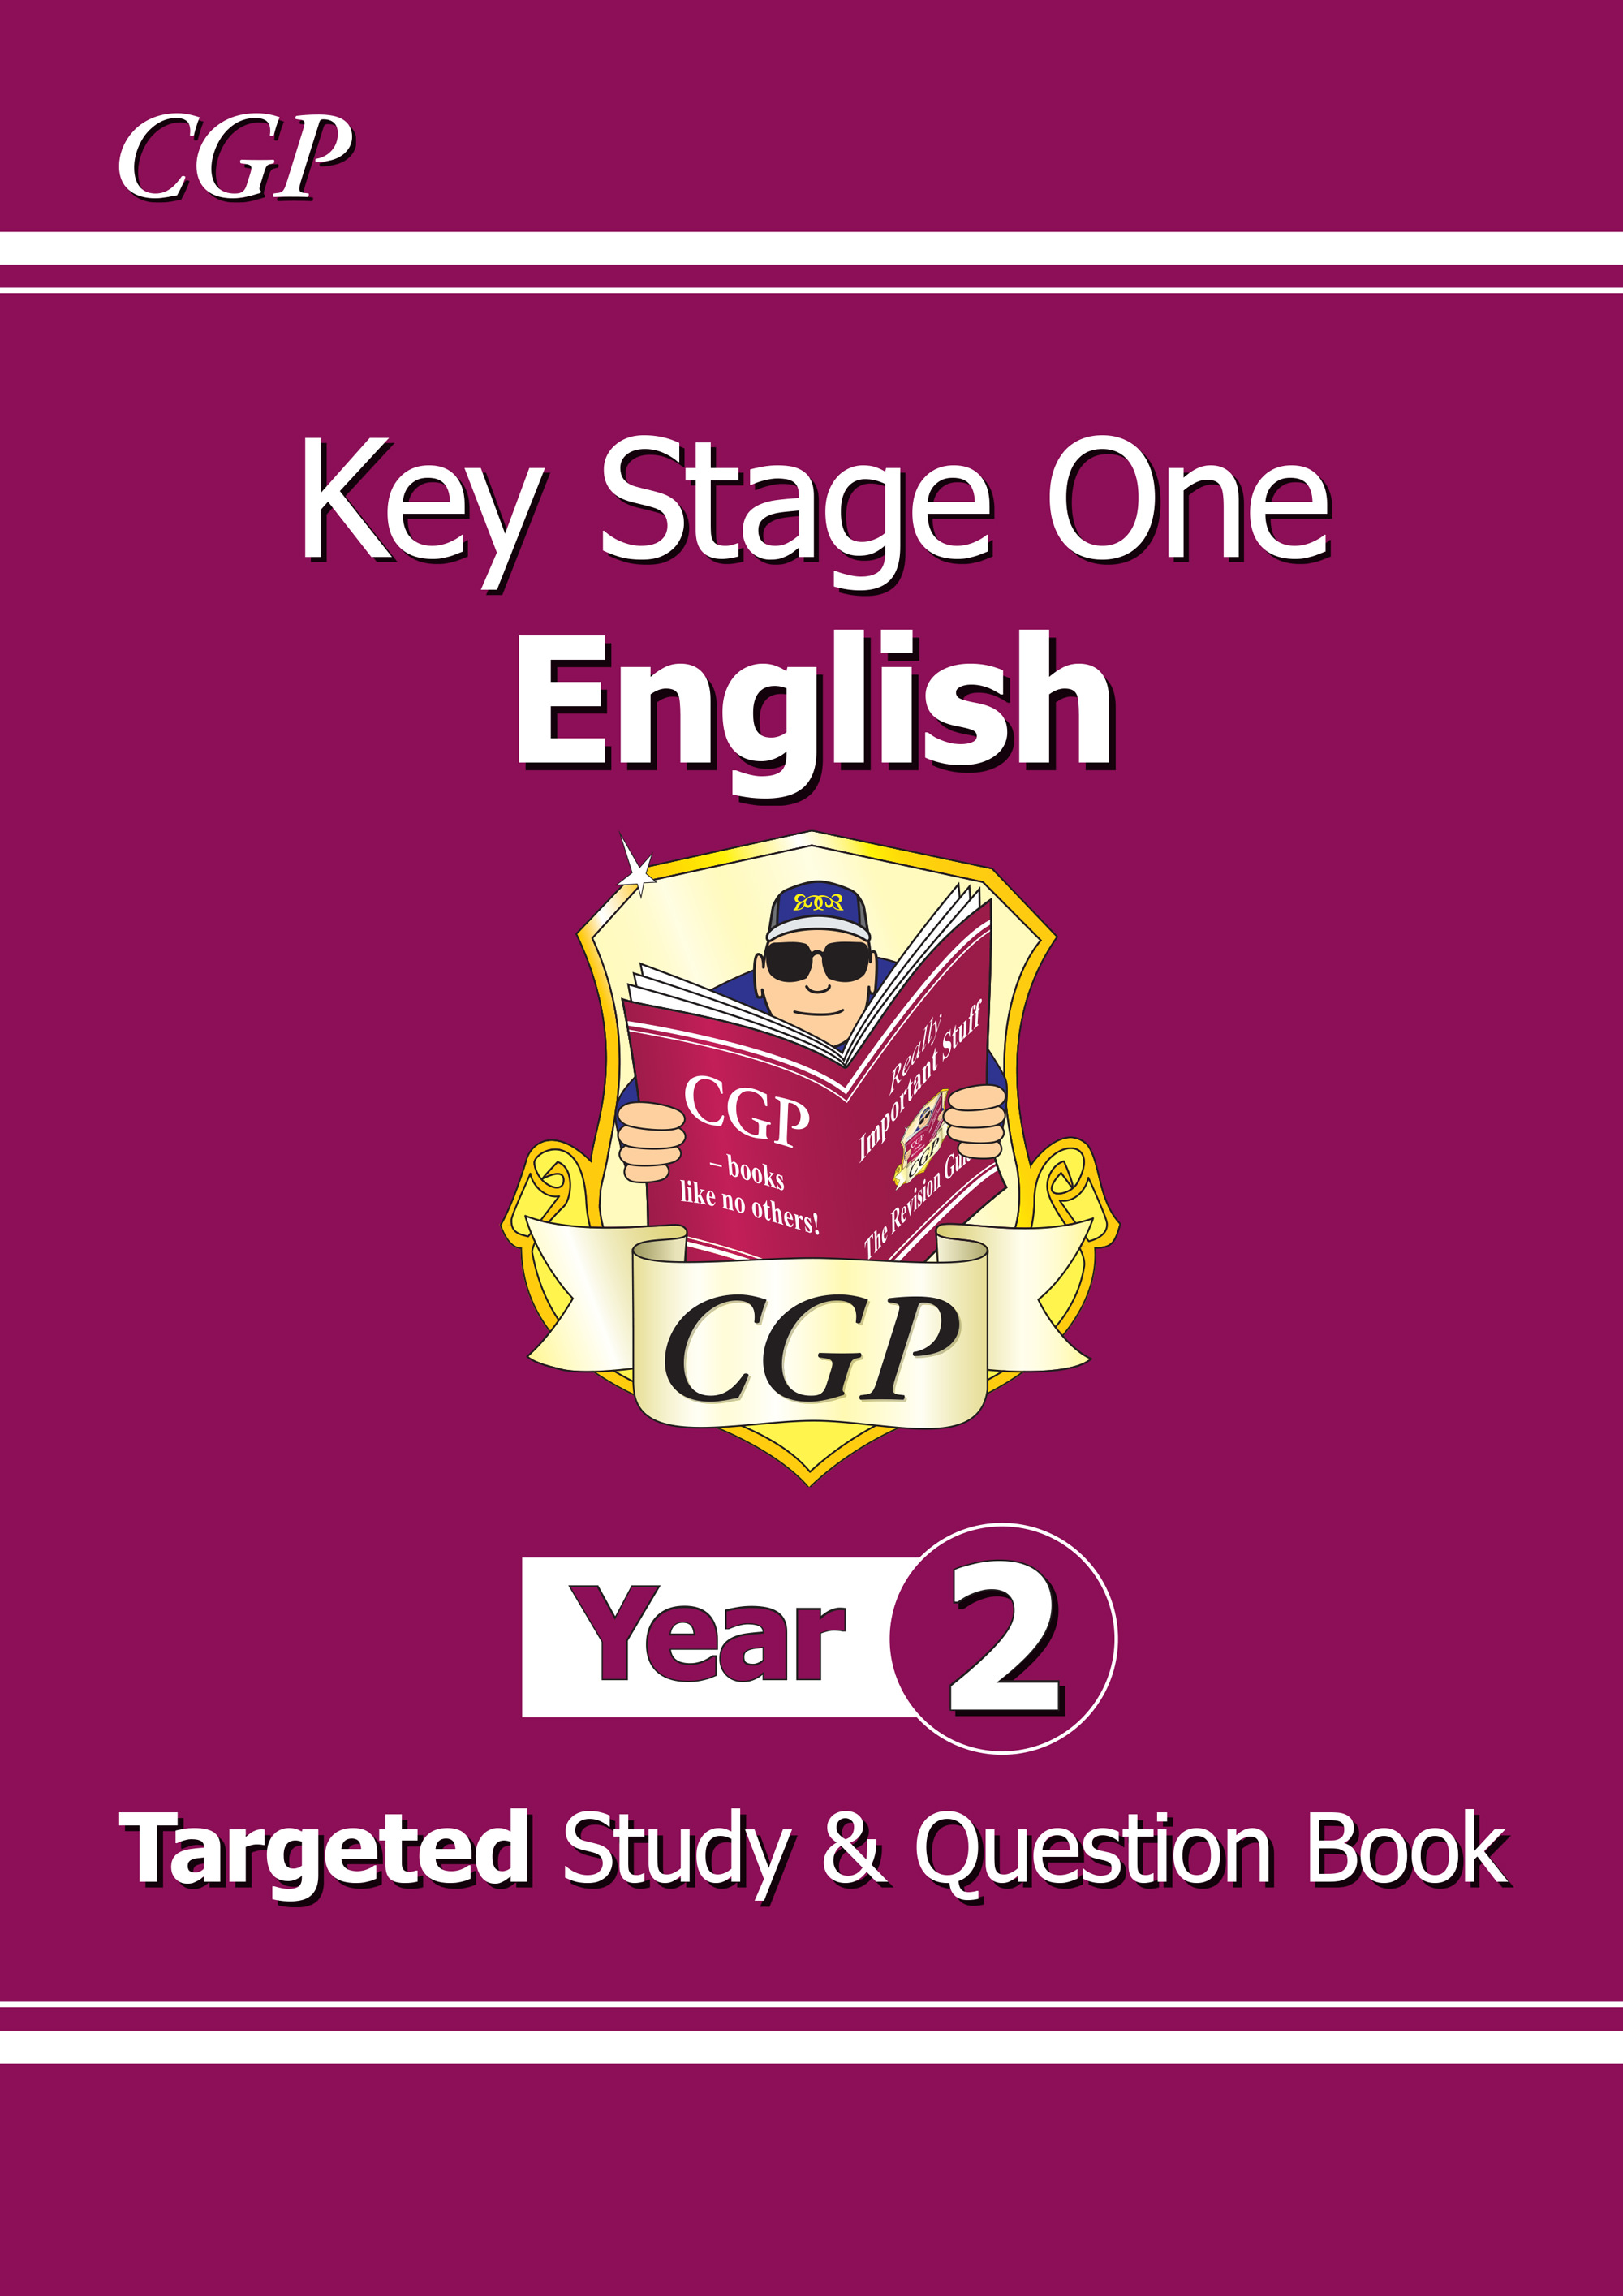 E2TS11 - KS1 English Targeted Study & Question Book - Year 2